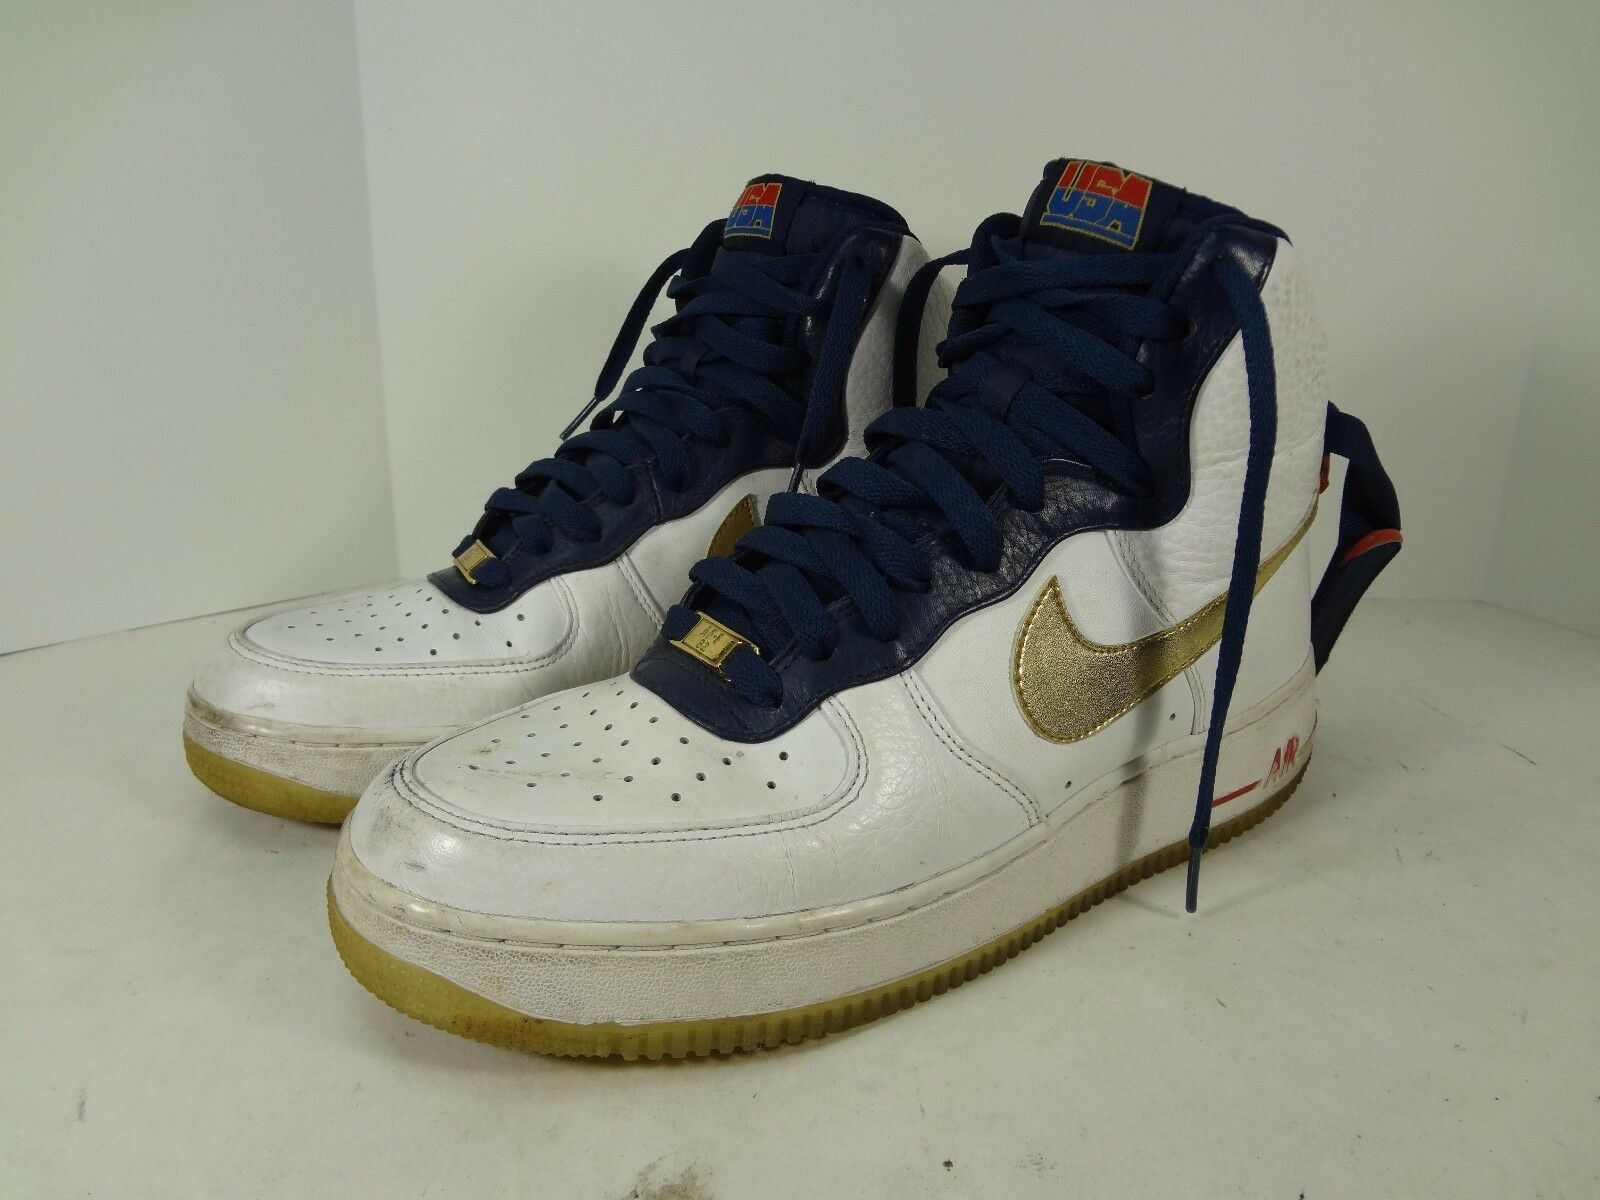 Nike Air Force 1 High Premium TEAM USA Olympic Mens 9 525317-100 DREAM TEAM